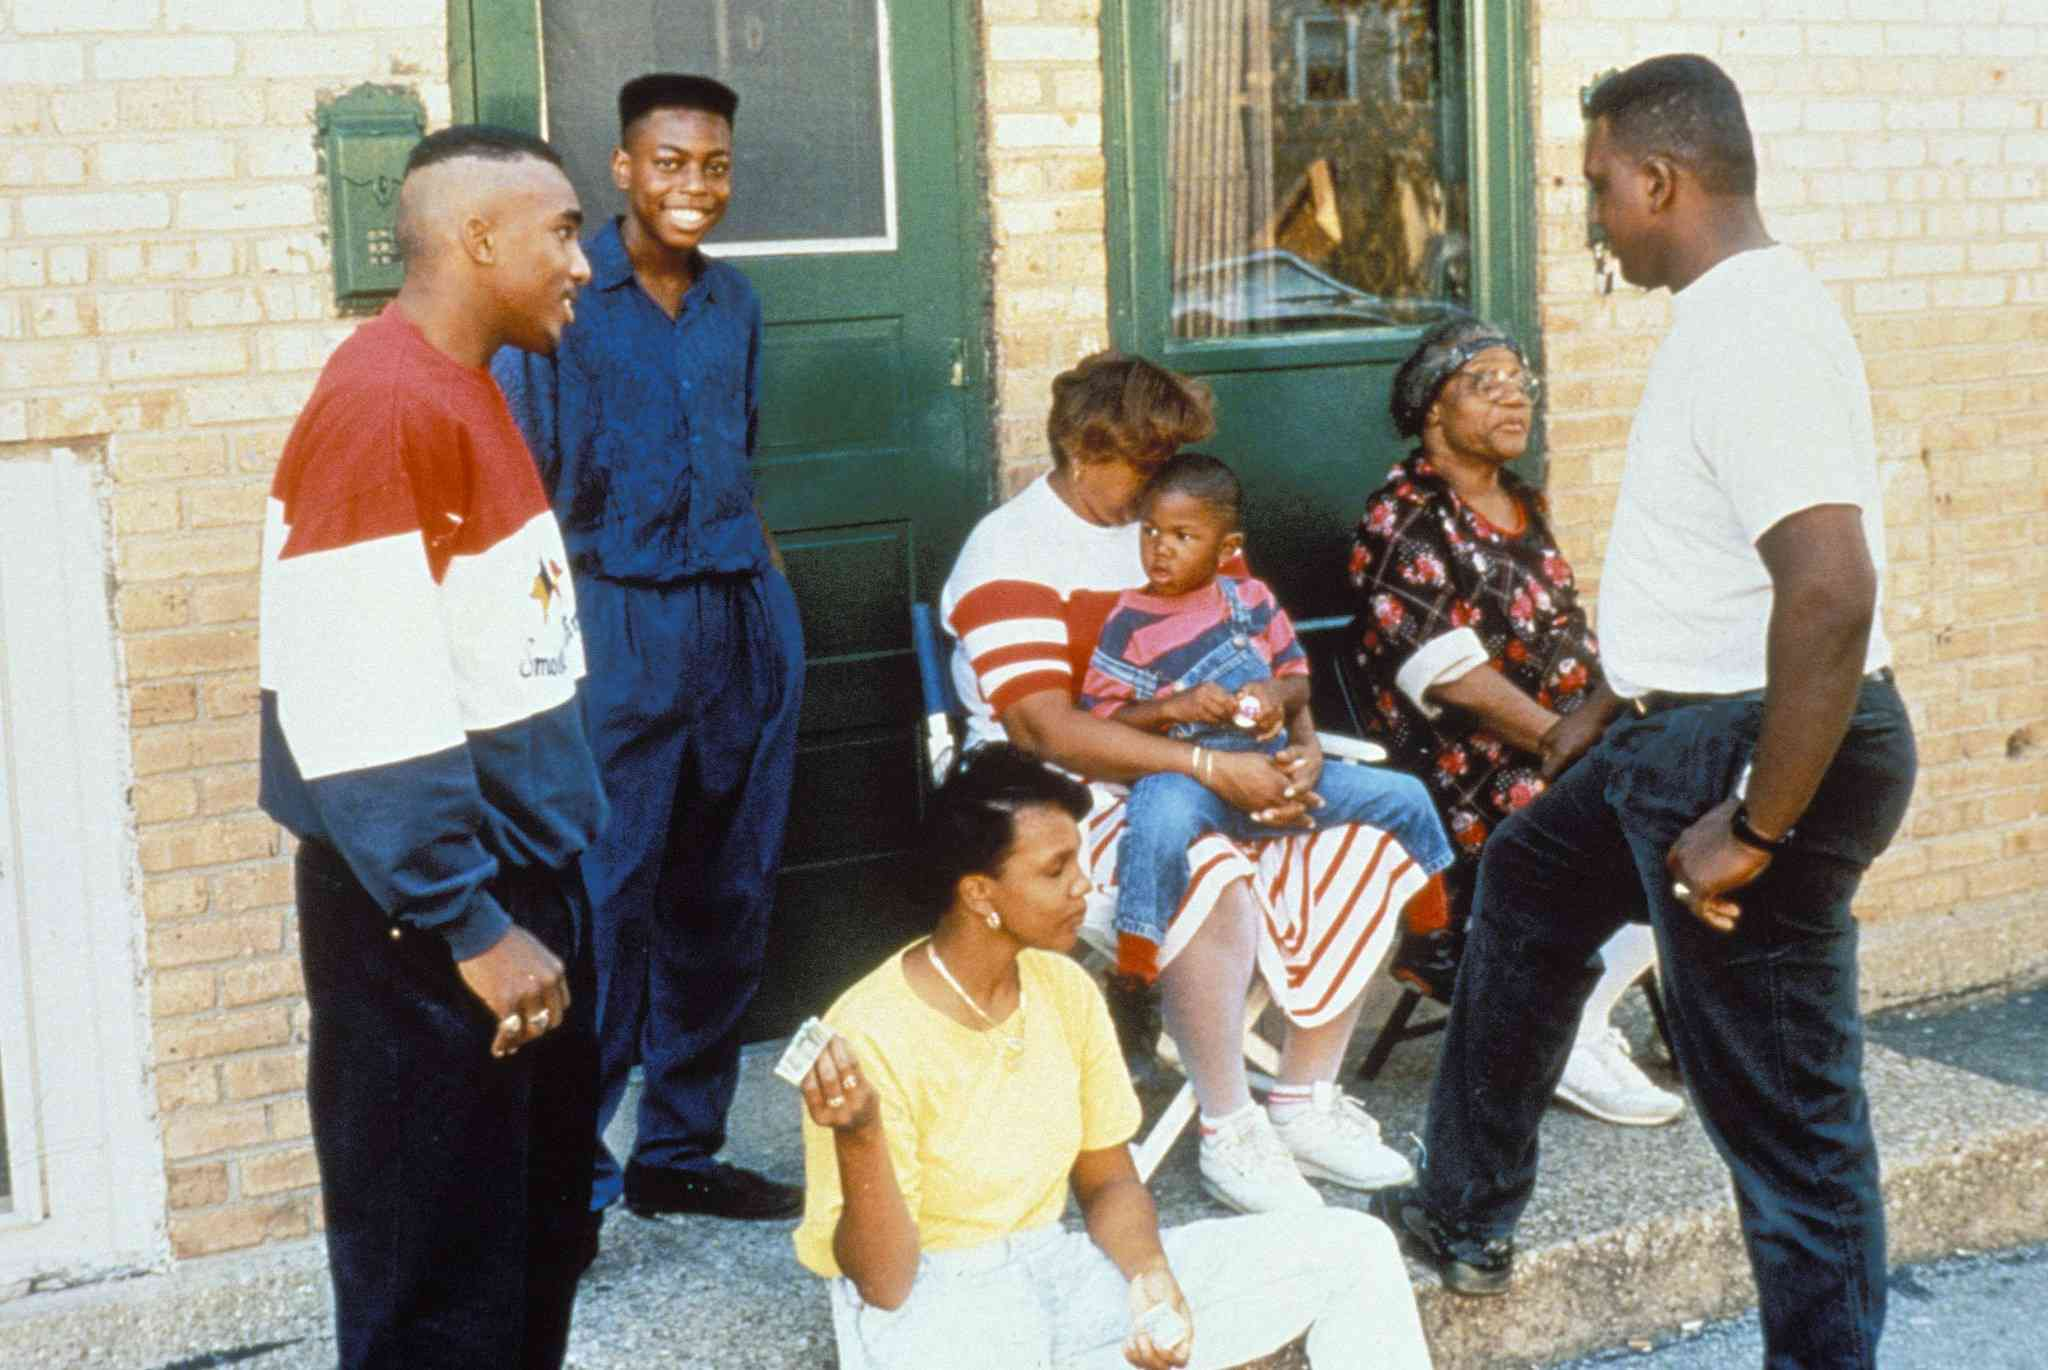 William Gates and others in Hoop Dreams (1994)